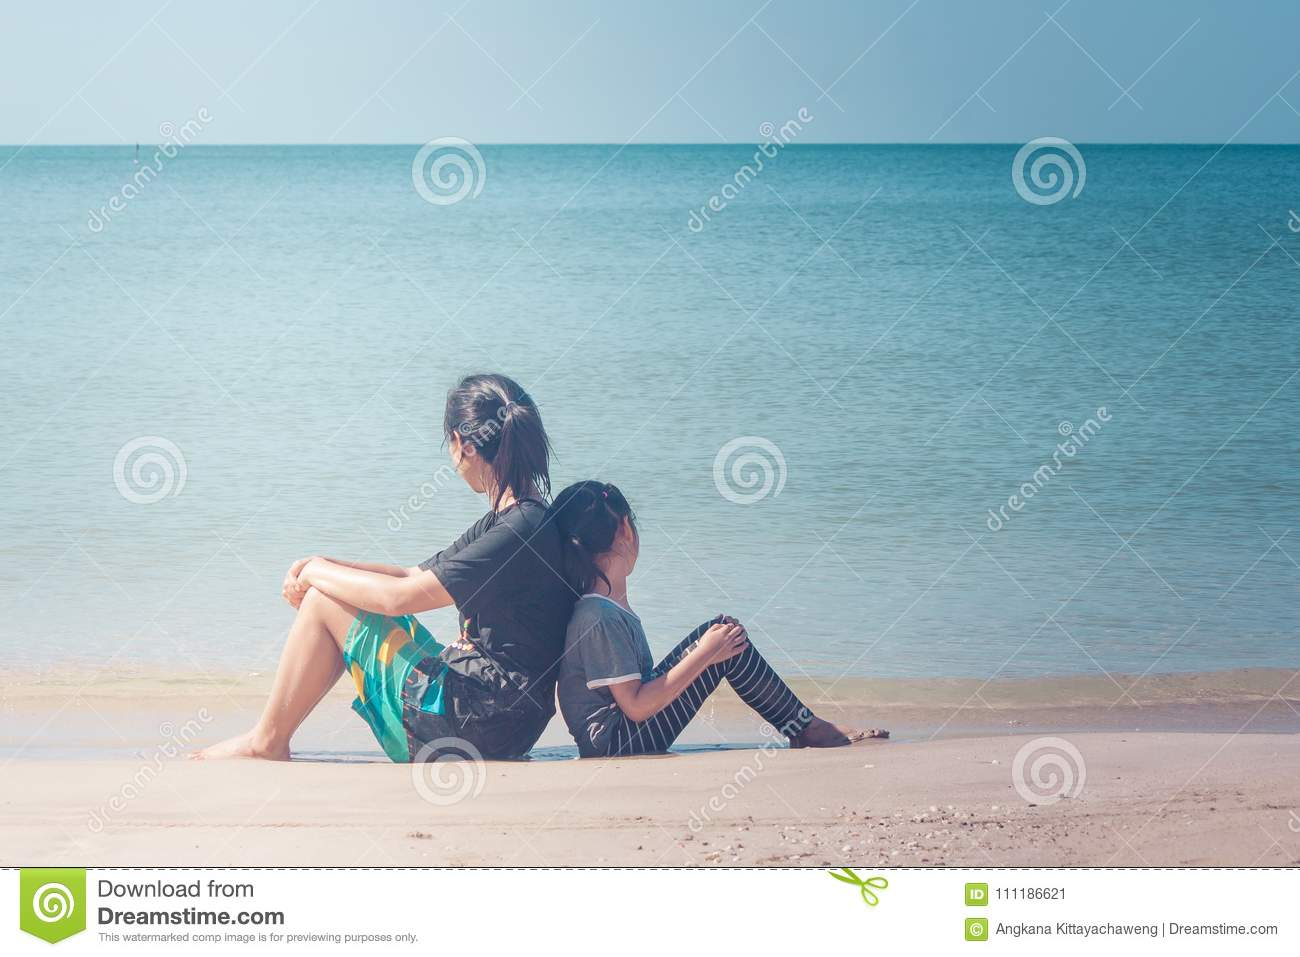 Summer Vacation and Holiday Concept : Happy family day trip at the sea, Woman and child sitting back to back relax on sand beach.